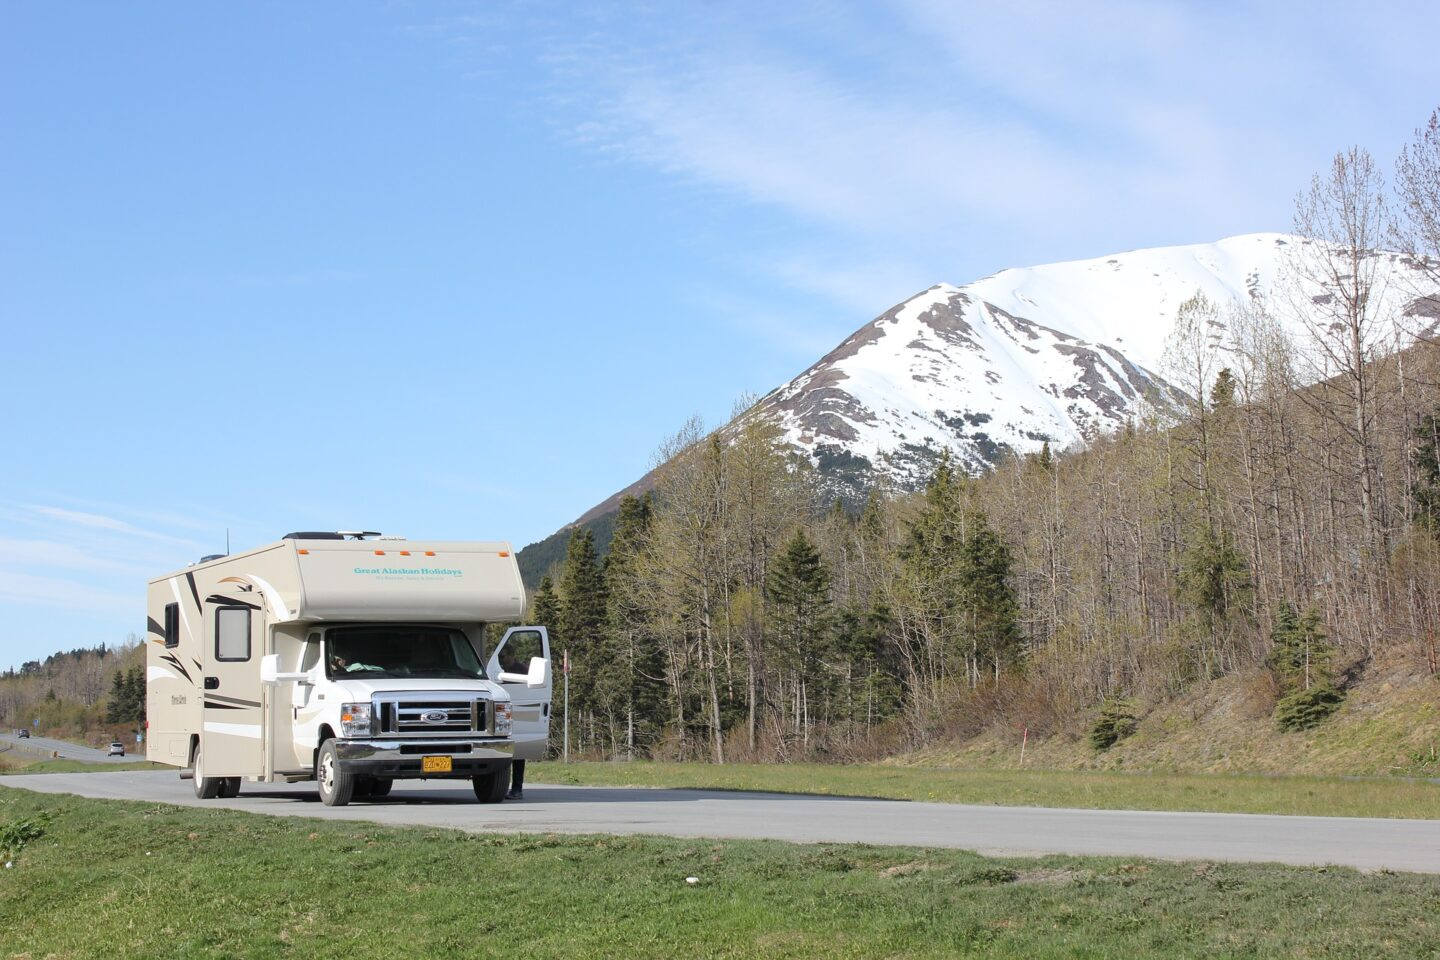 Guest Post: 6 Quick Tips for RV Beginners